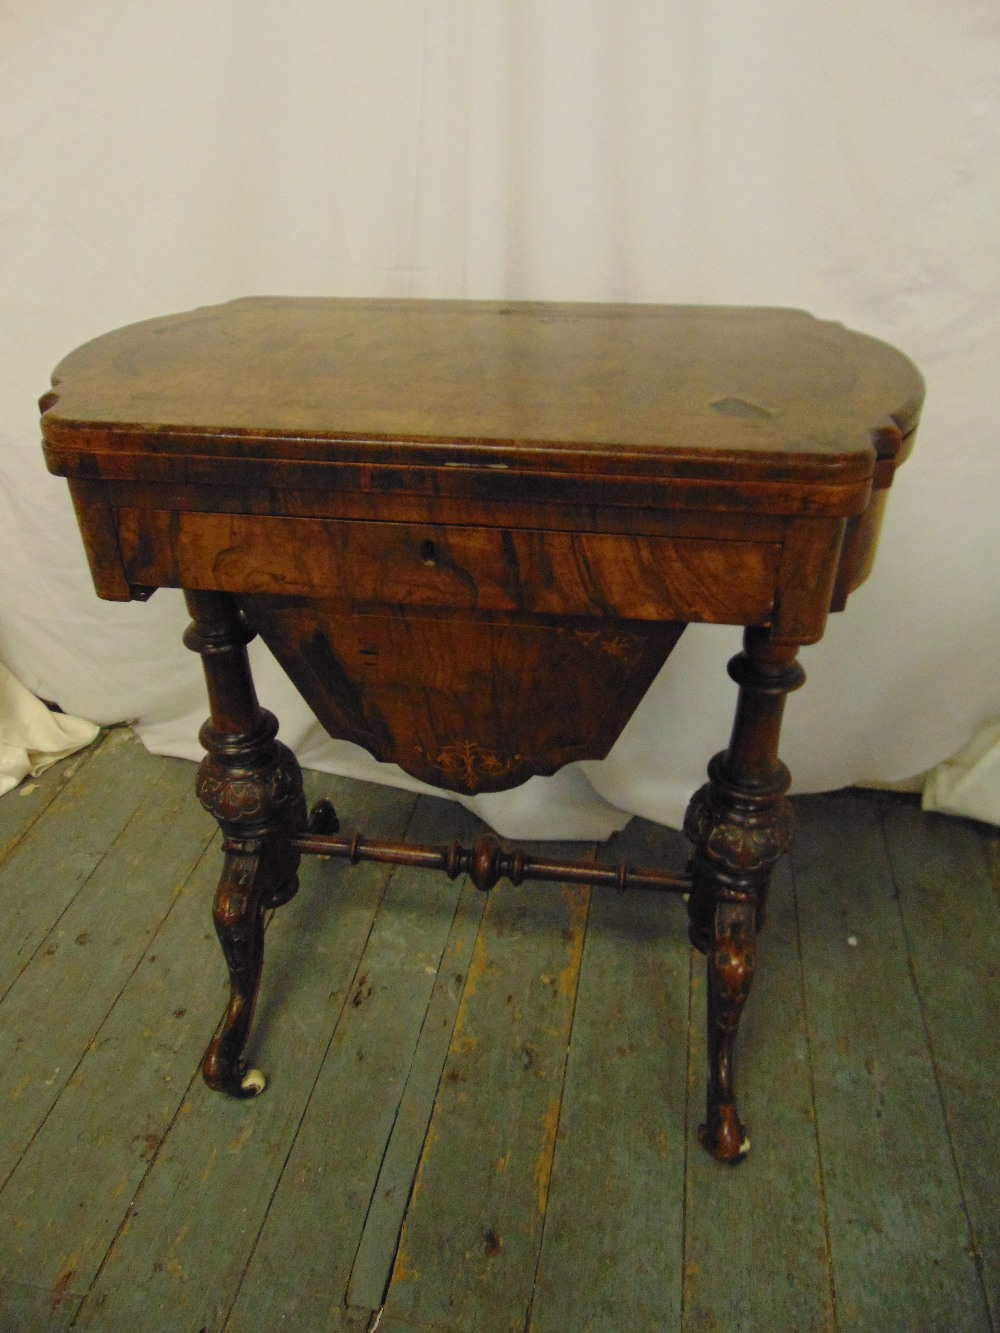 Lot 2 - A 19th century walnut and mahogany games and sewing table of shaped rectangular form on four knopped